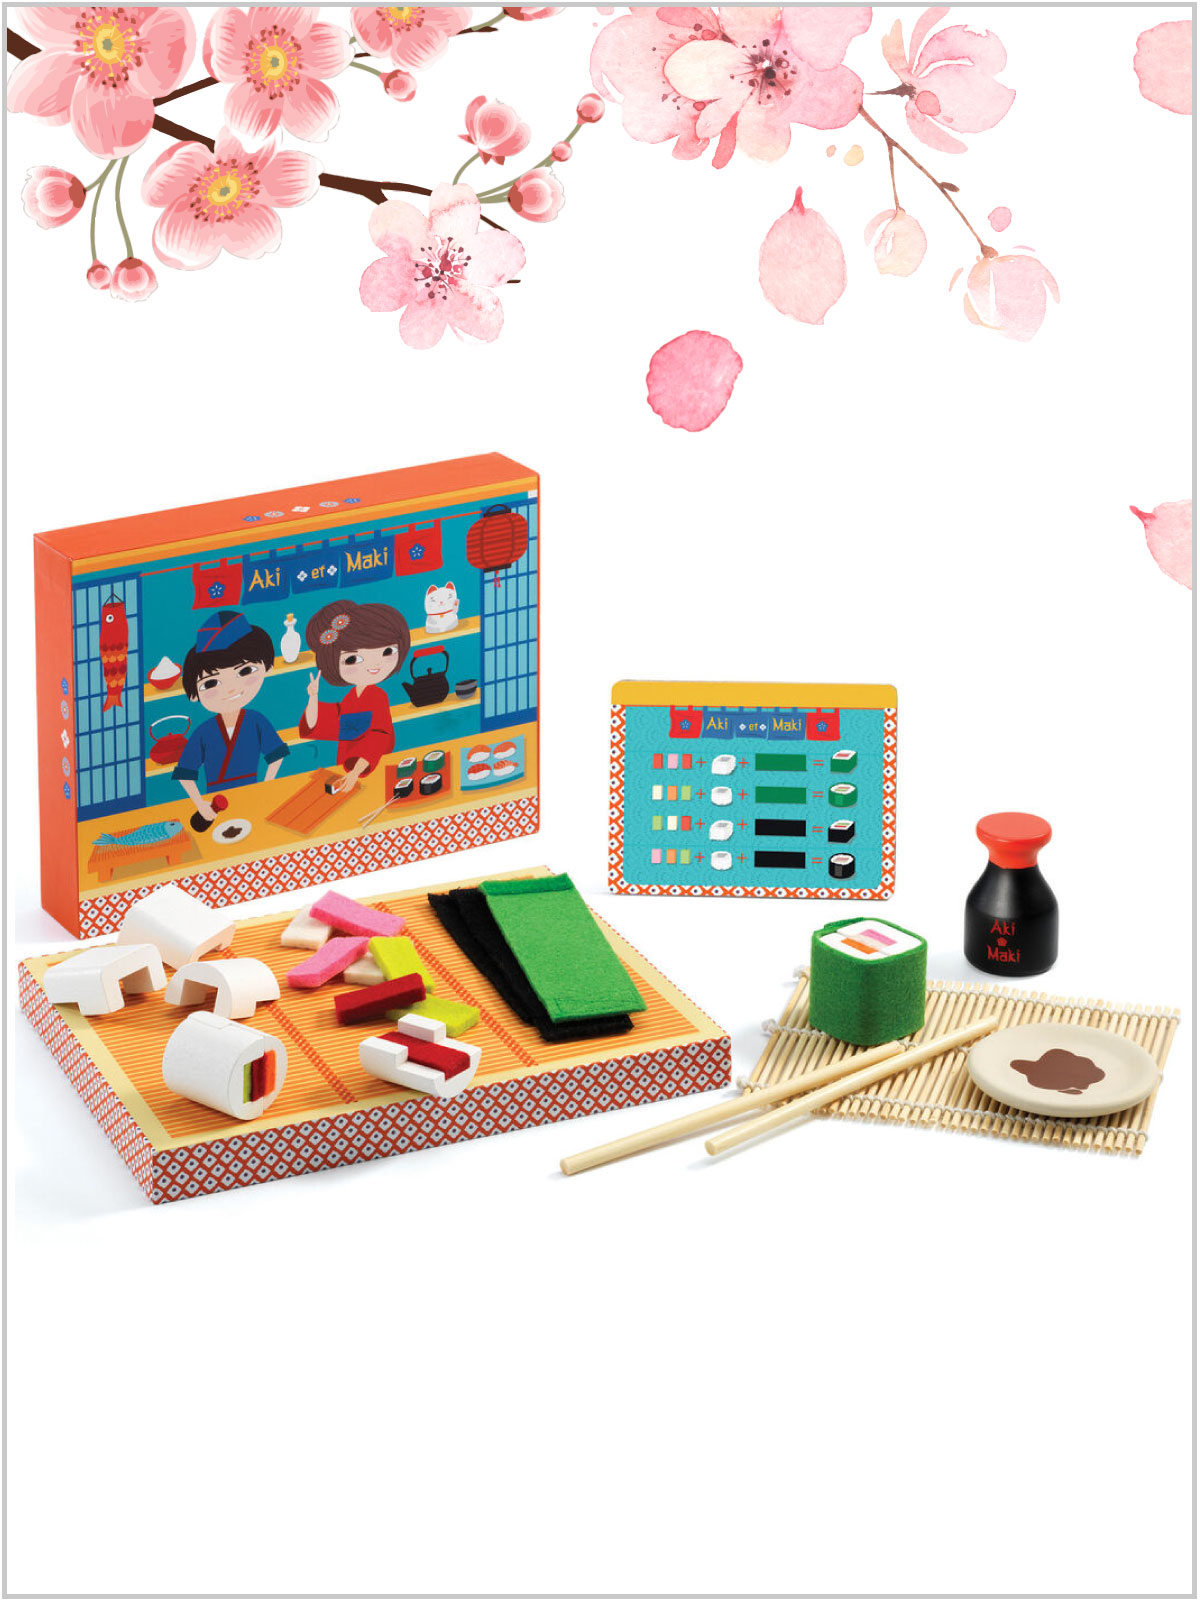 frederickandsophie-kids-toys-games-djeco-wooden-sushi-making-set